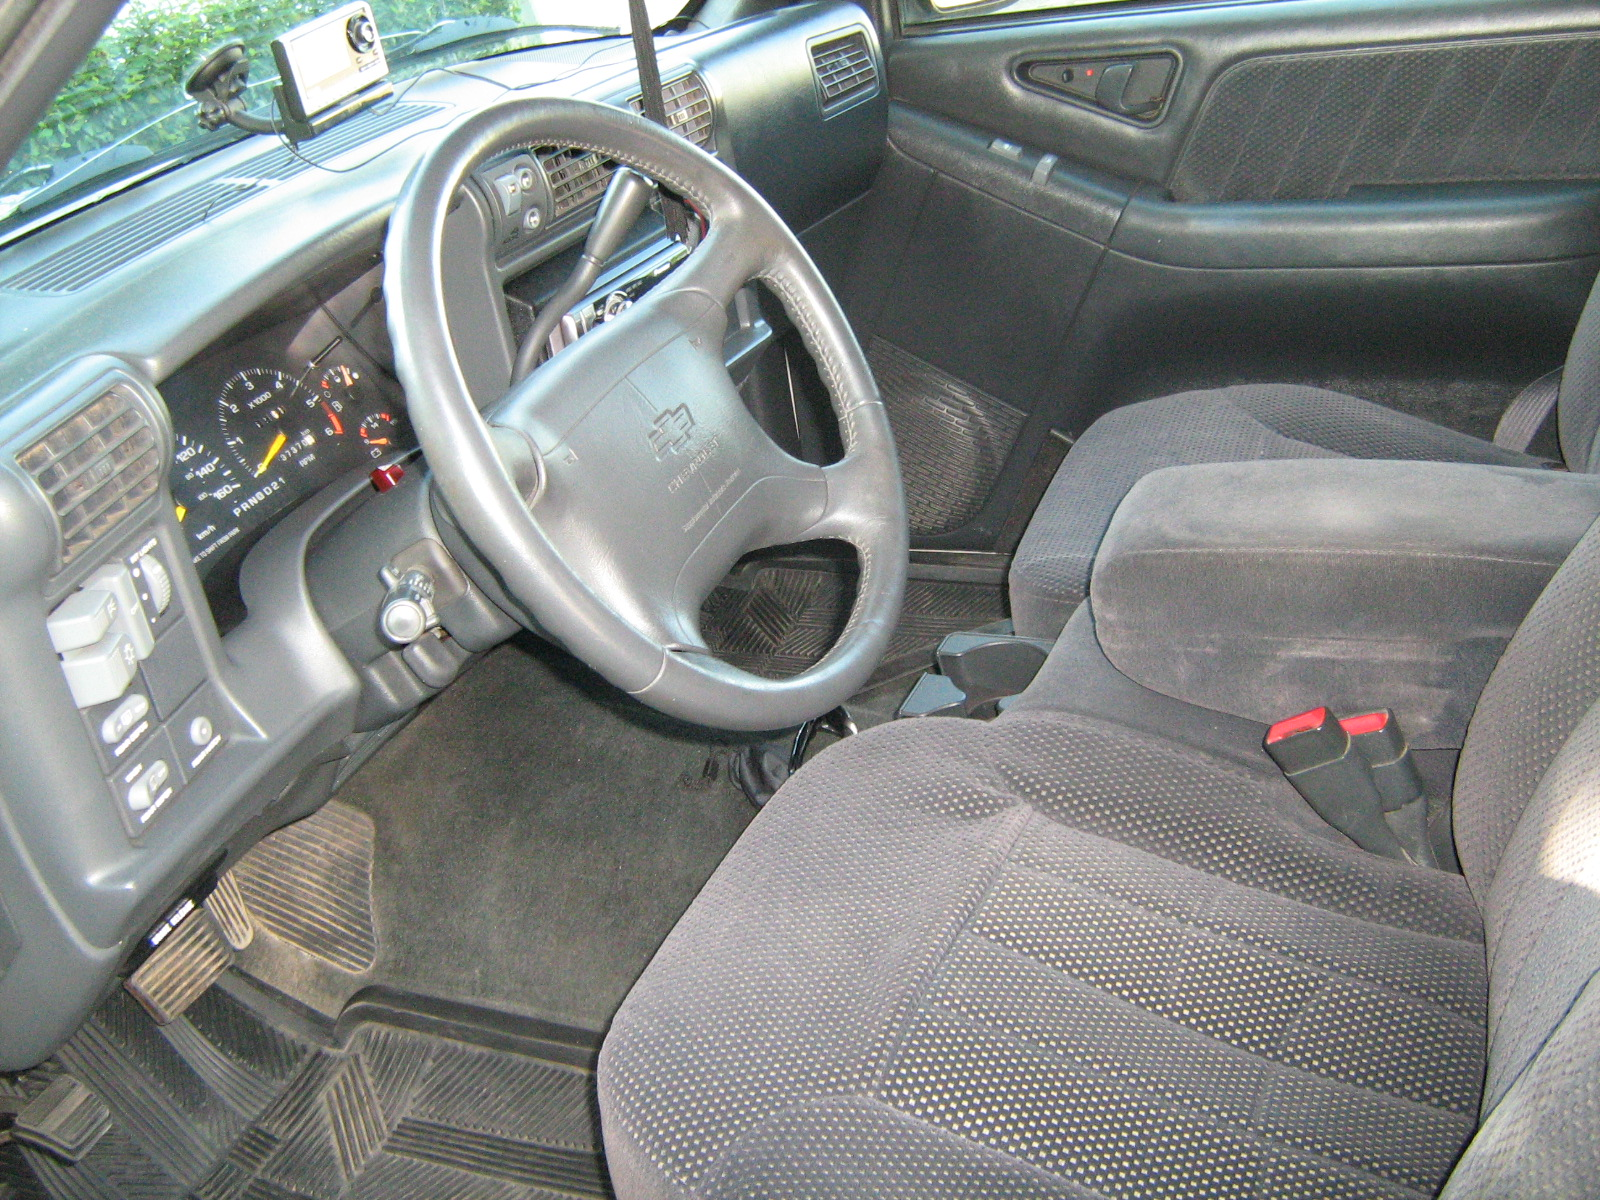 2002 Chevy Blazer Interior Parts